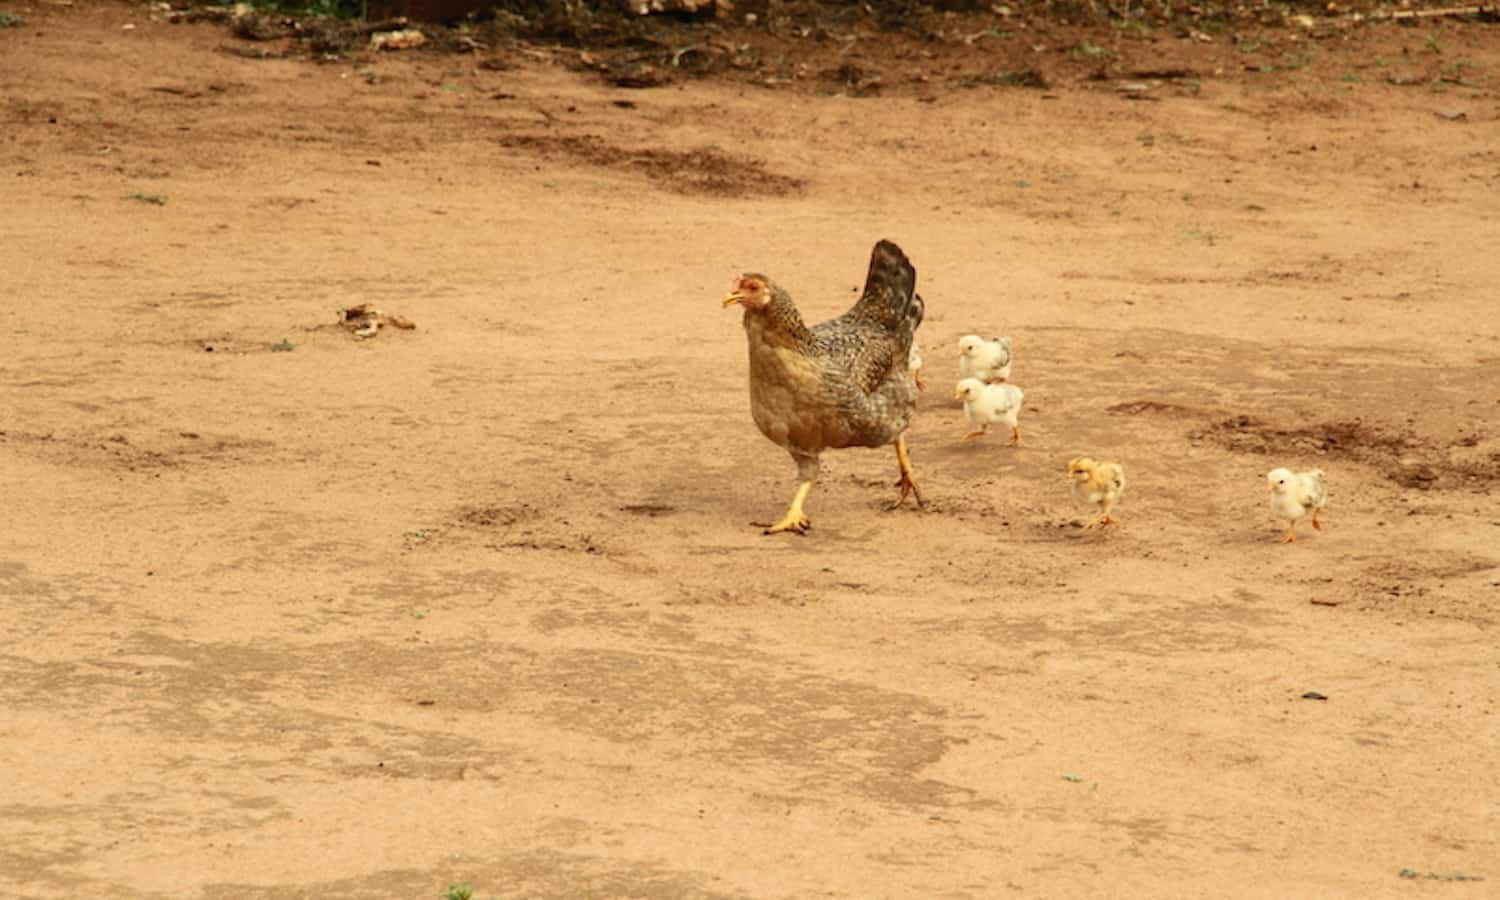 These two articles describe how raising animals could help improve incomes among farmers in Mali—particularly women farmers.